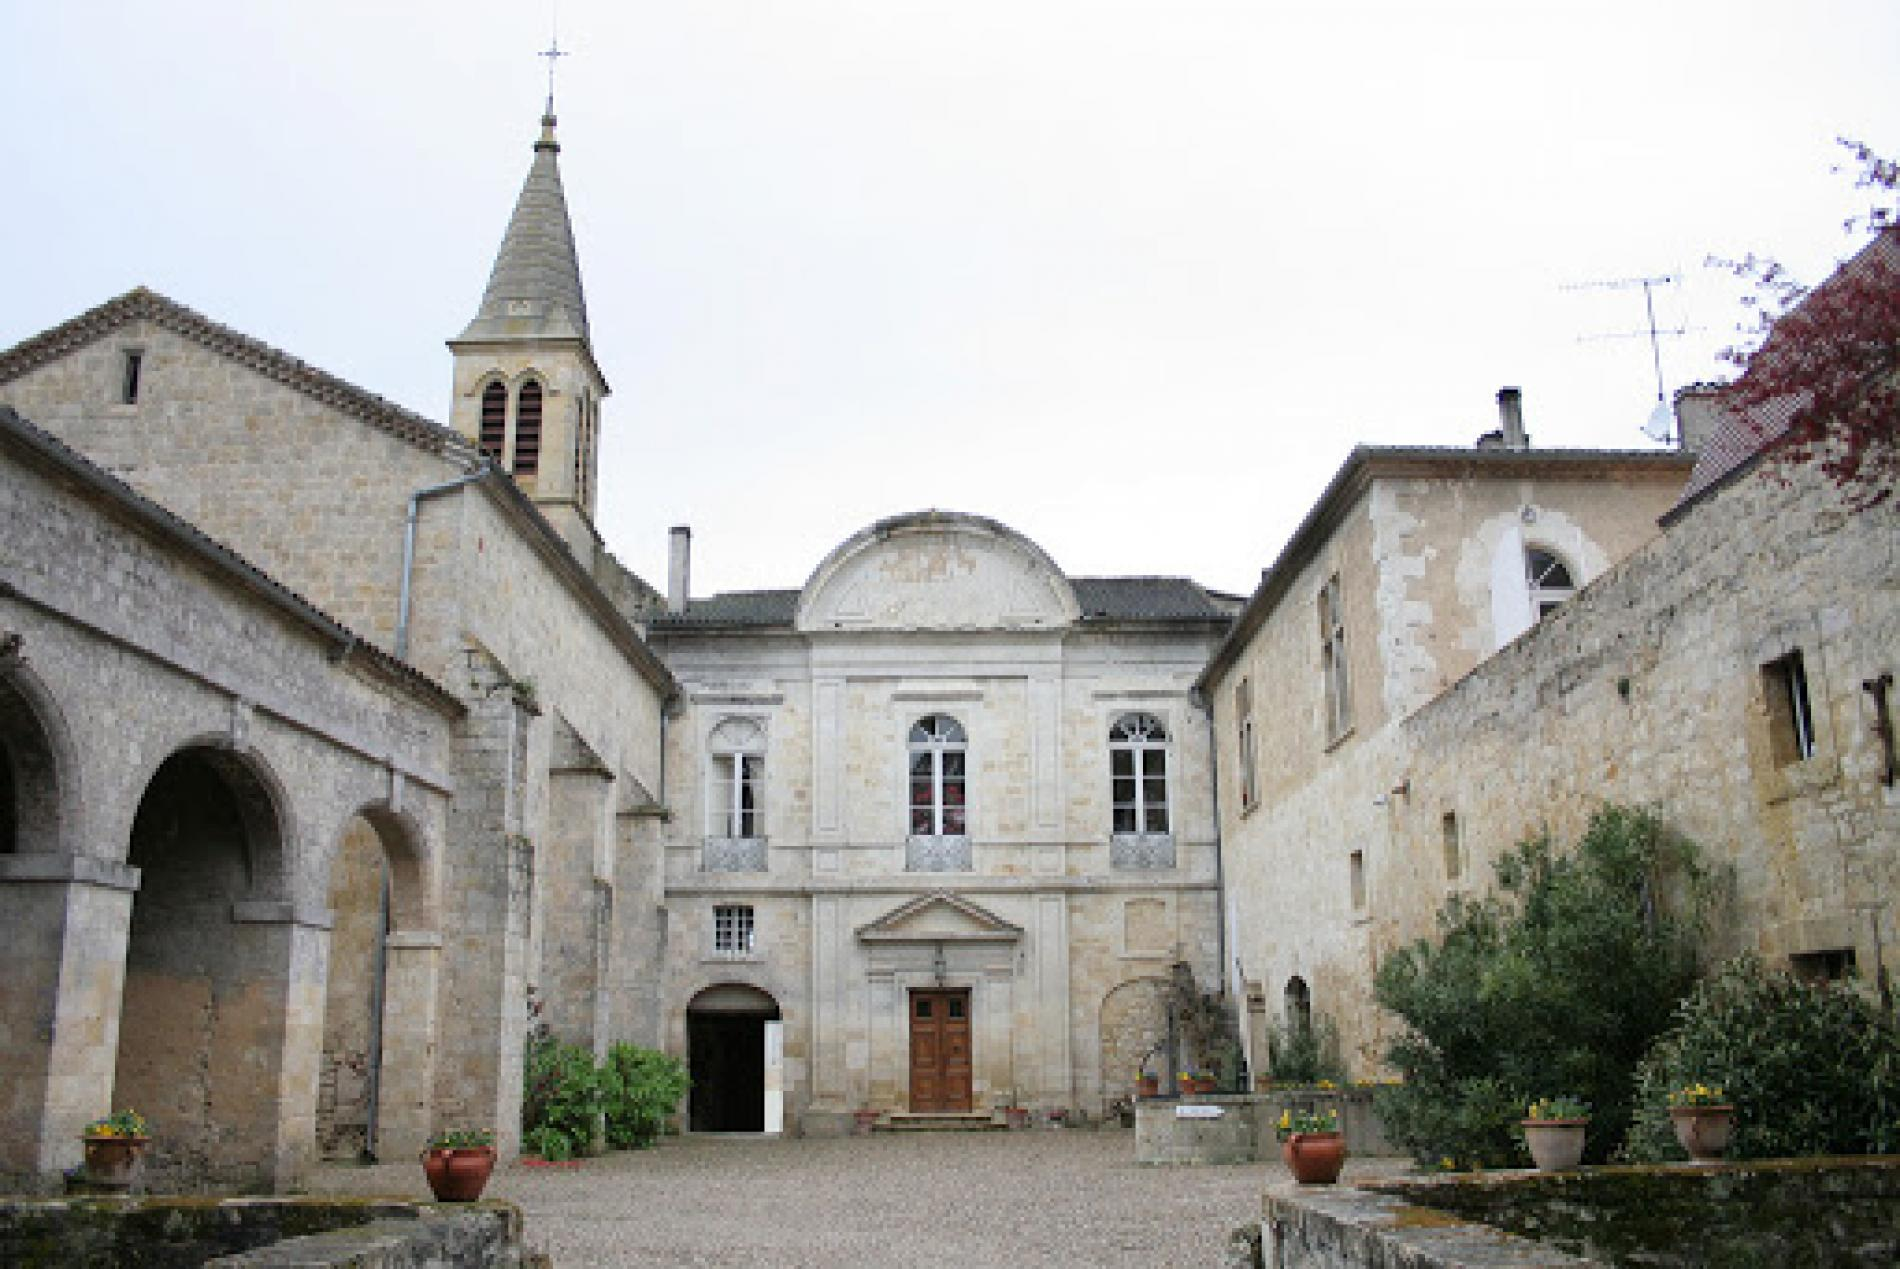 The Chateau de Cassaigne